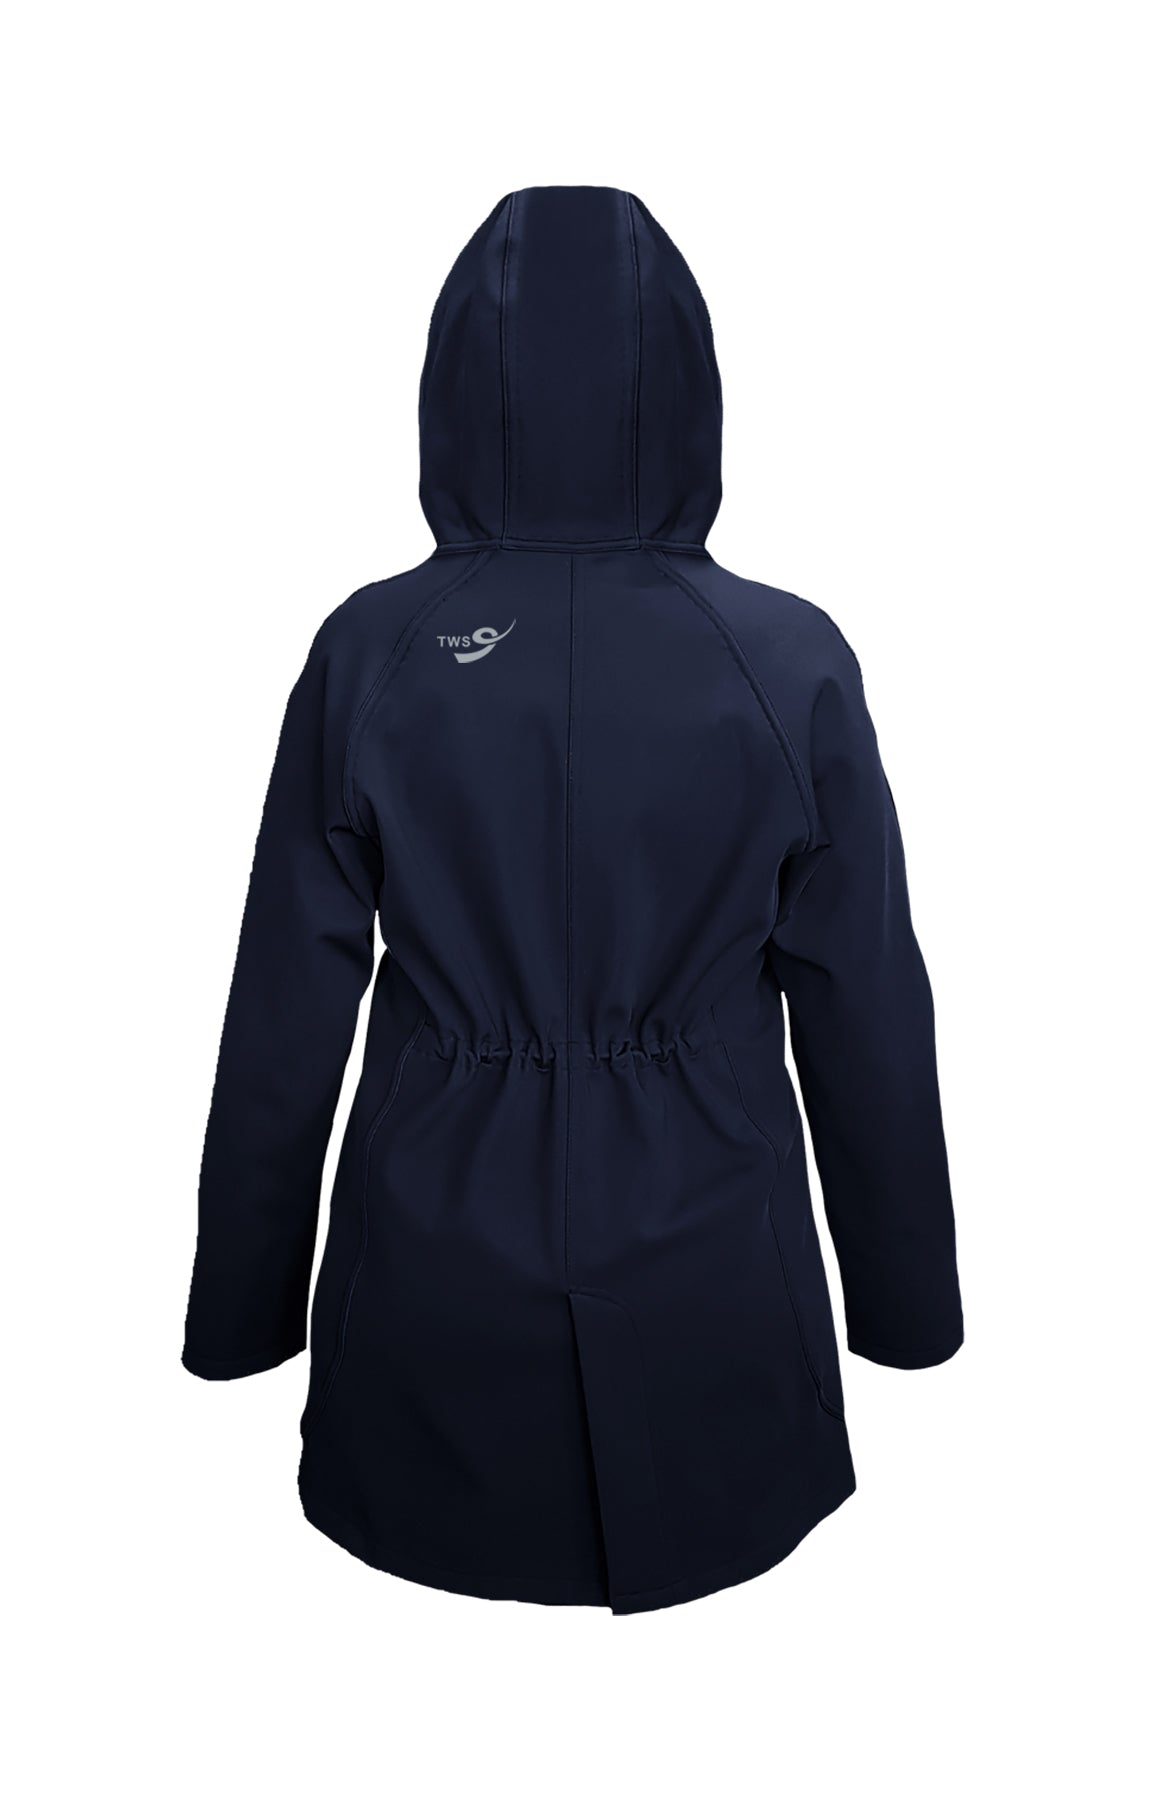 THE WESTSIDE SCHOOL K-9 RAIN COAT WITH HOOD, GIRLS, YOUTH